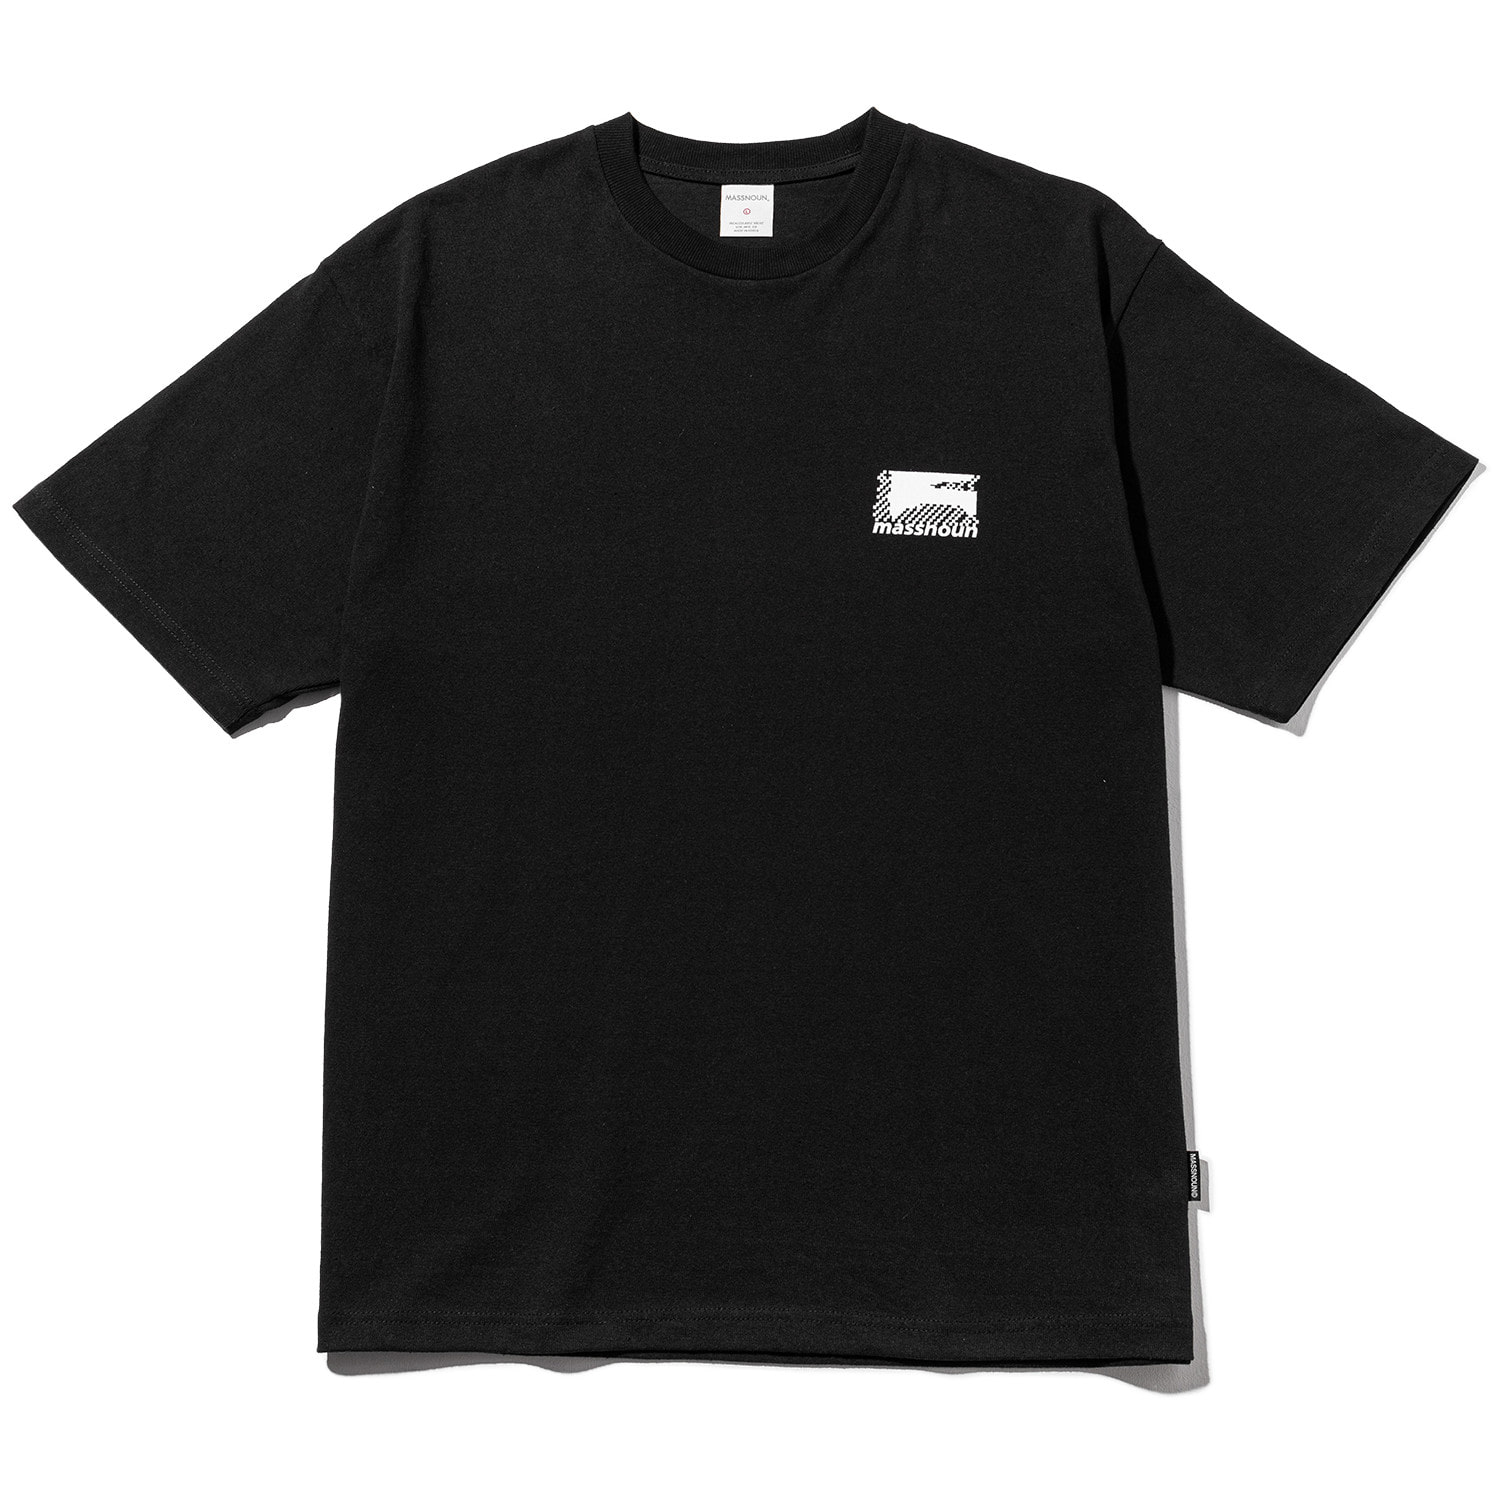 FRAGILE OVERSIED T-SHIRT MWZTS001-BK